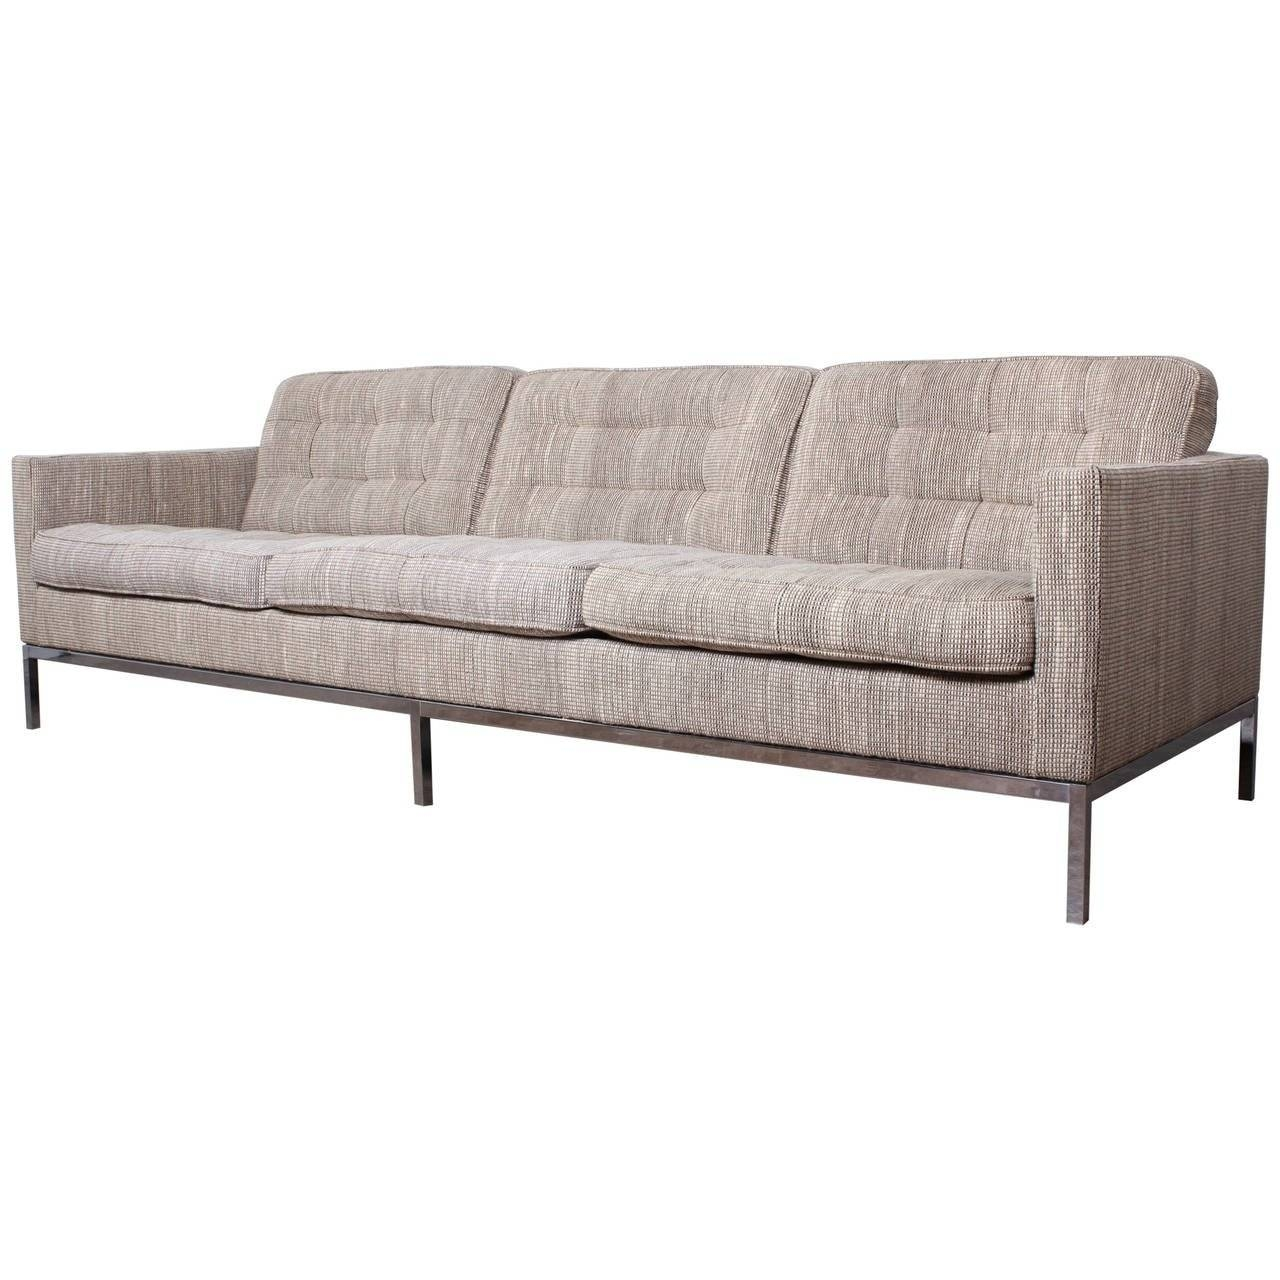 "Sofa Designedflorence Knoll In ""cato"" Wool Upholstery For Sale for Florence Knoll Wood Legs Sofas (Image 20 of 25)"